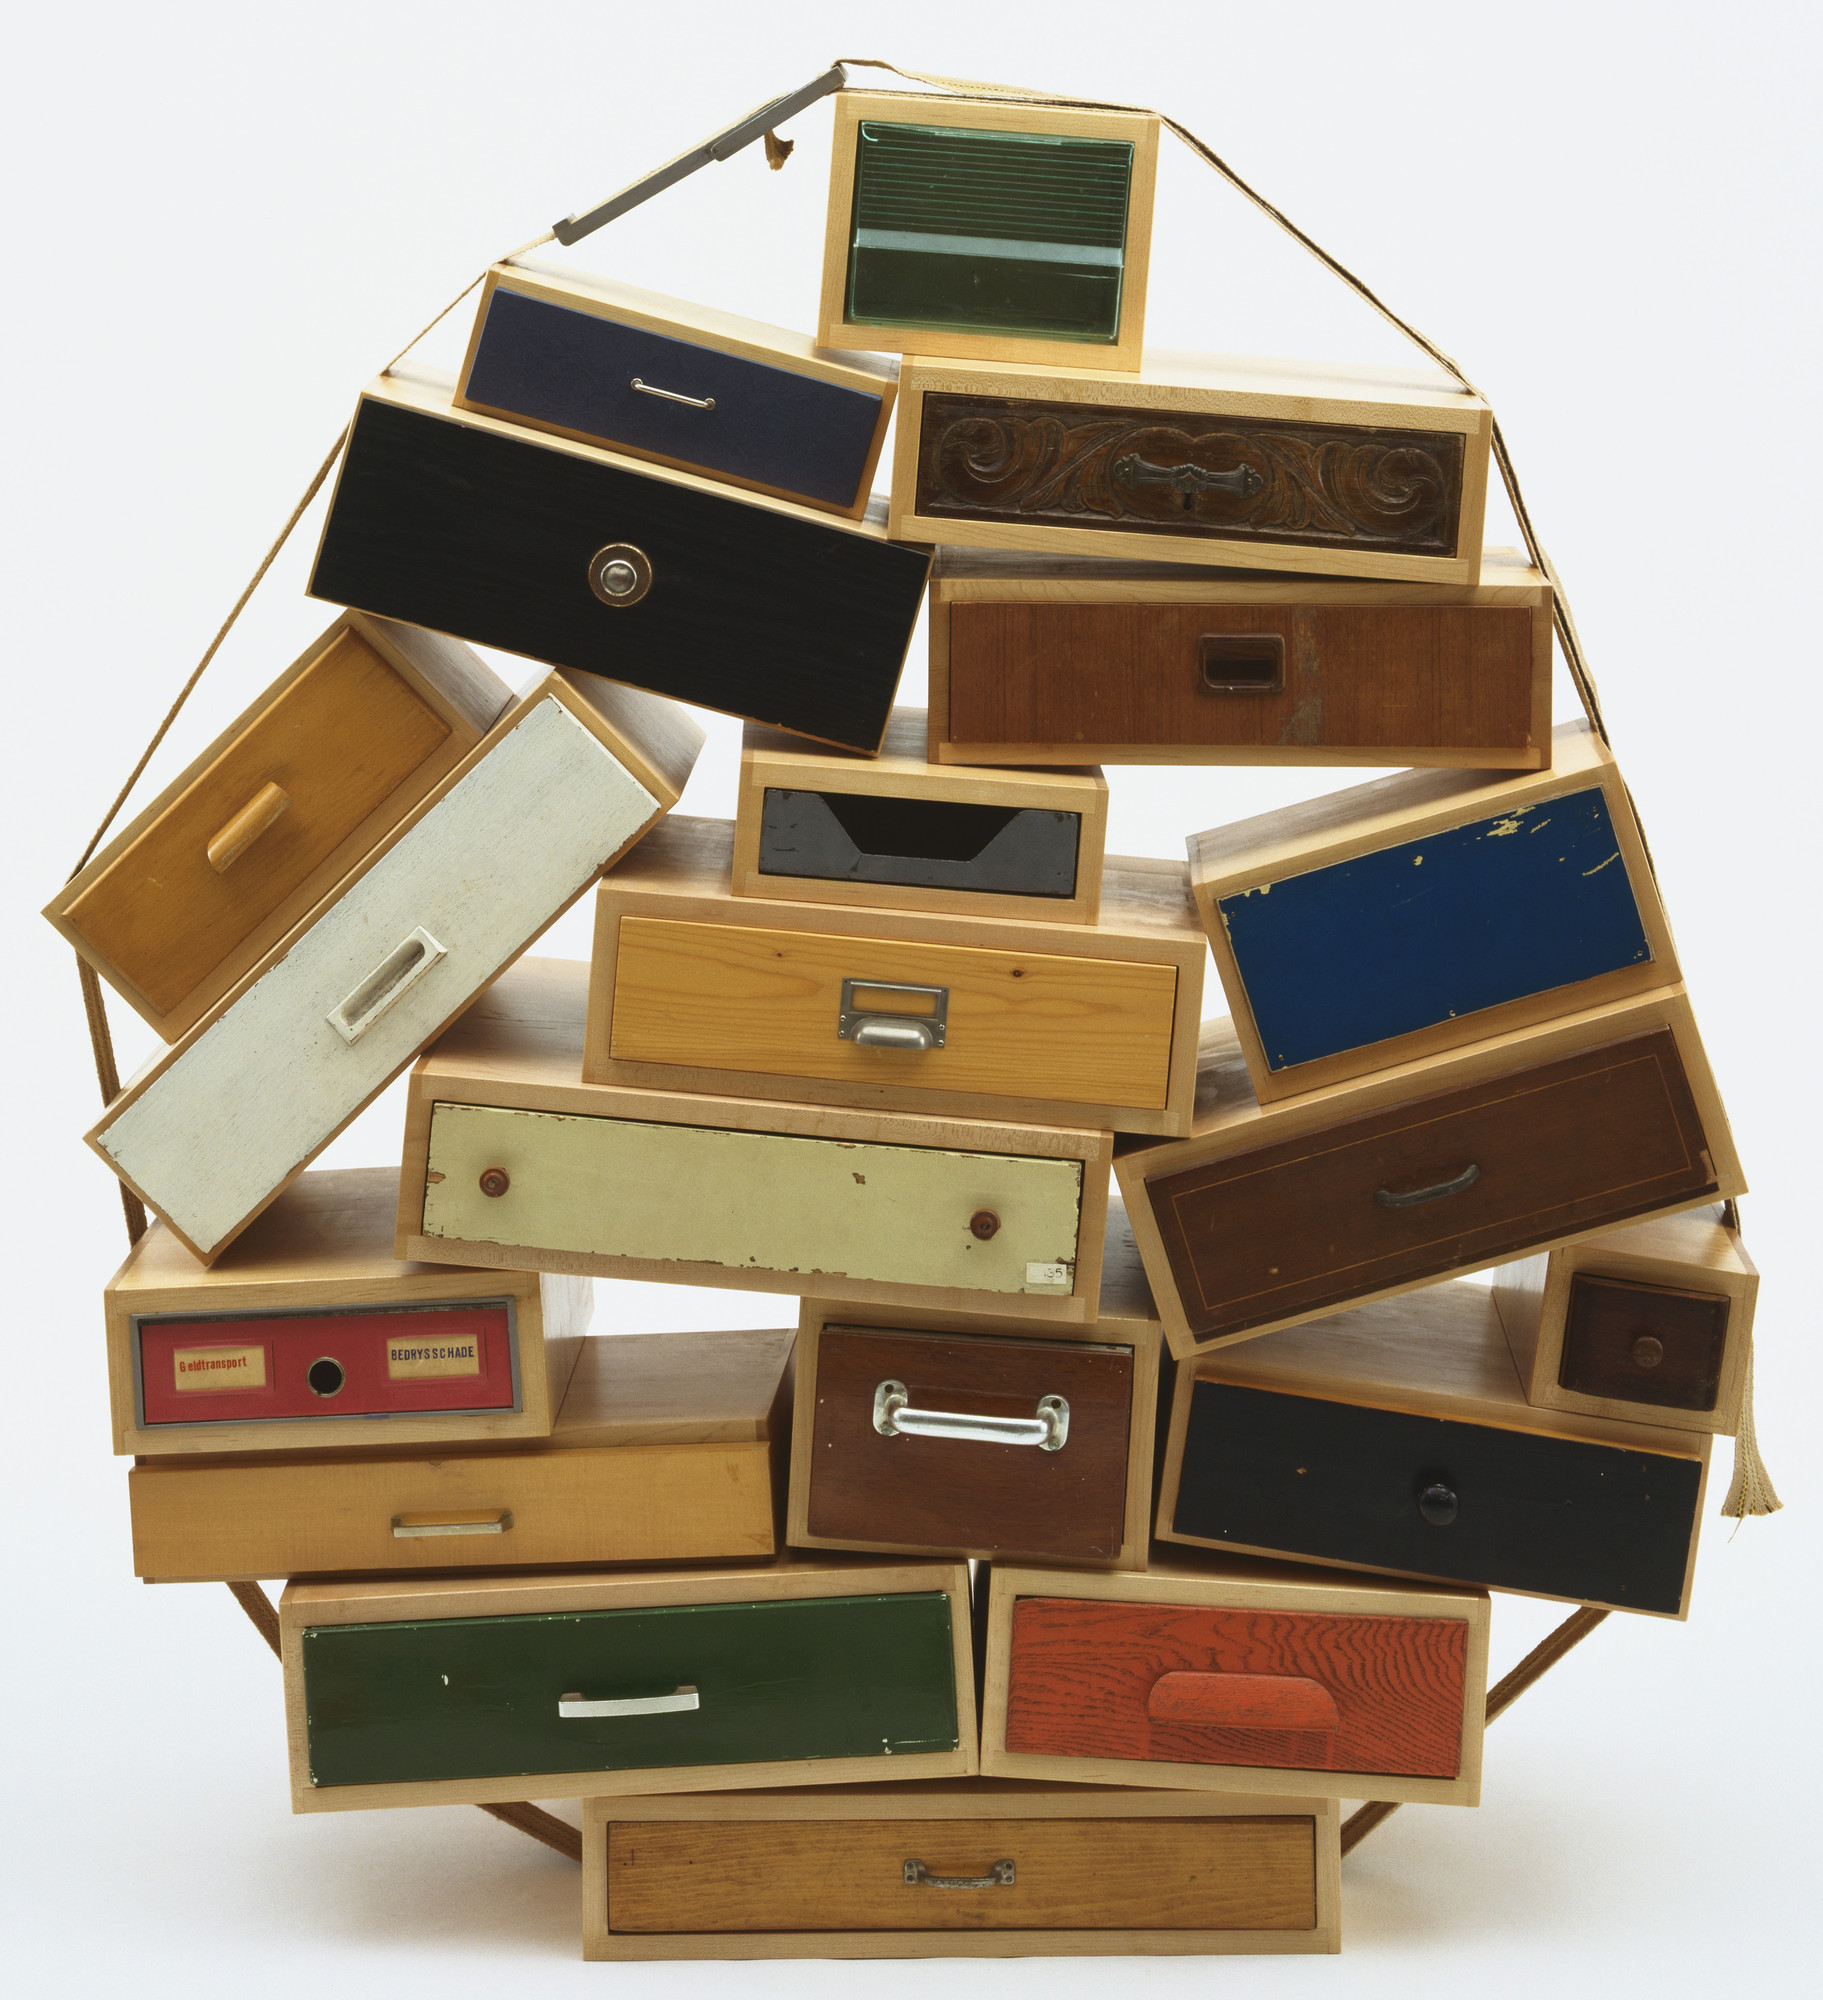 Tejo Remy. 'You Can't Lay Down Your Memory' Chest of Drawers. 1991